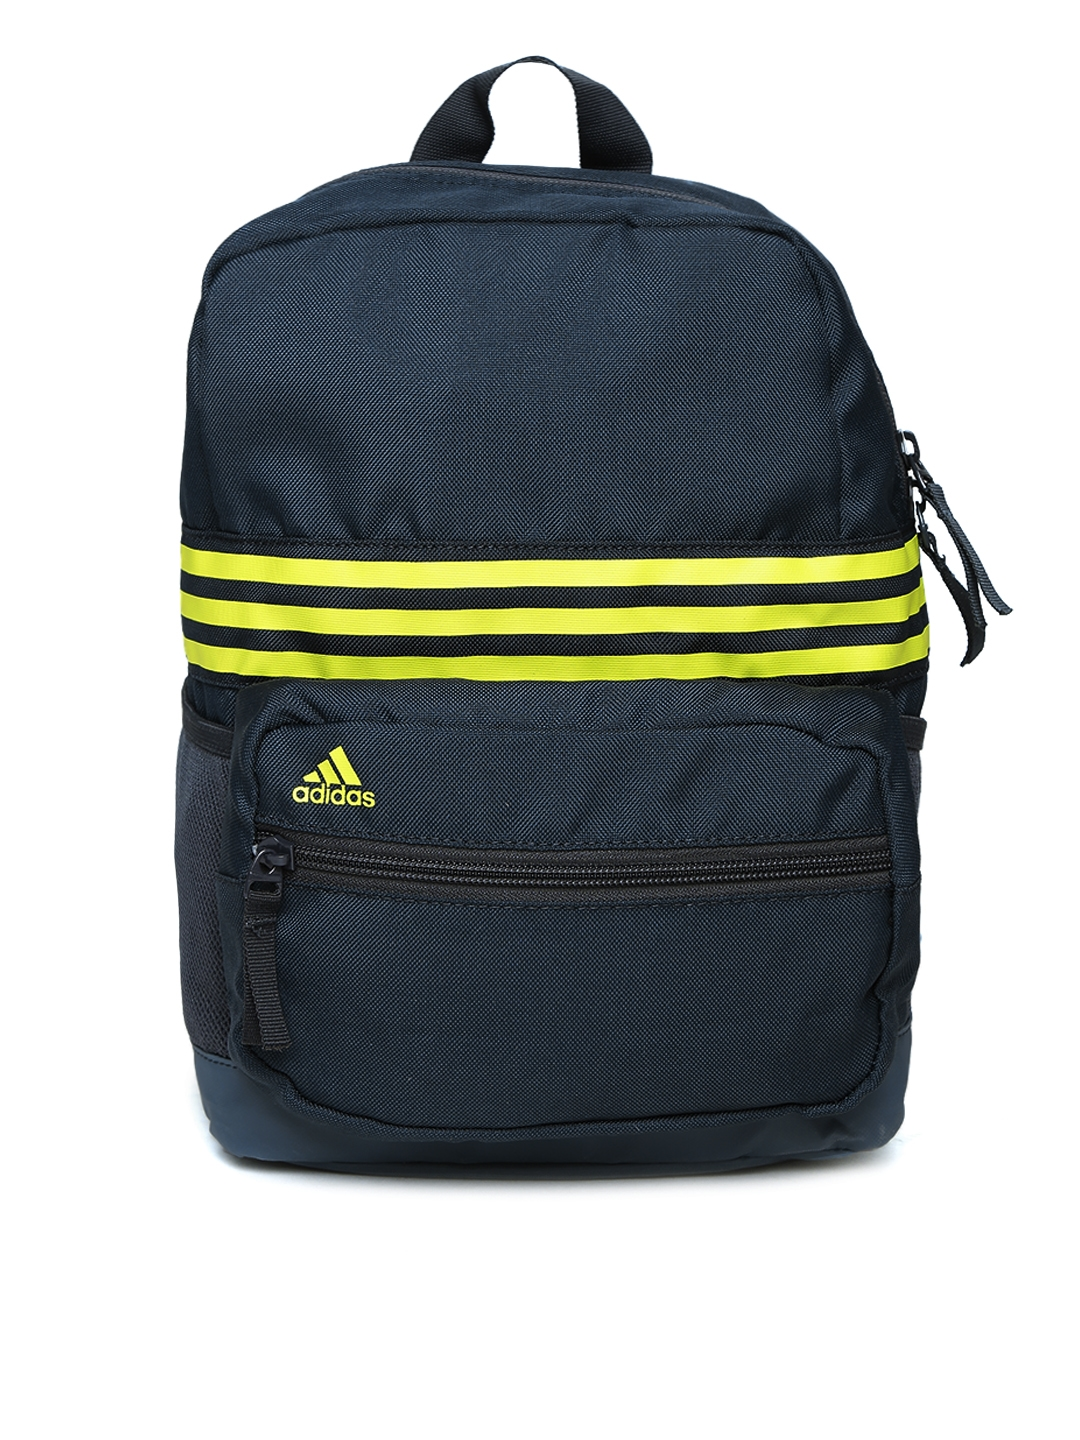 3f2bd8130068 Buy Adidas Backpacks Online- Fenix Toulouse Handball